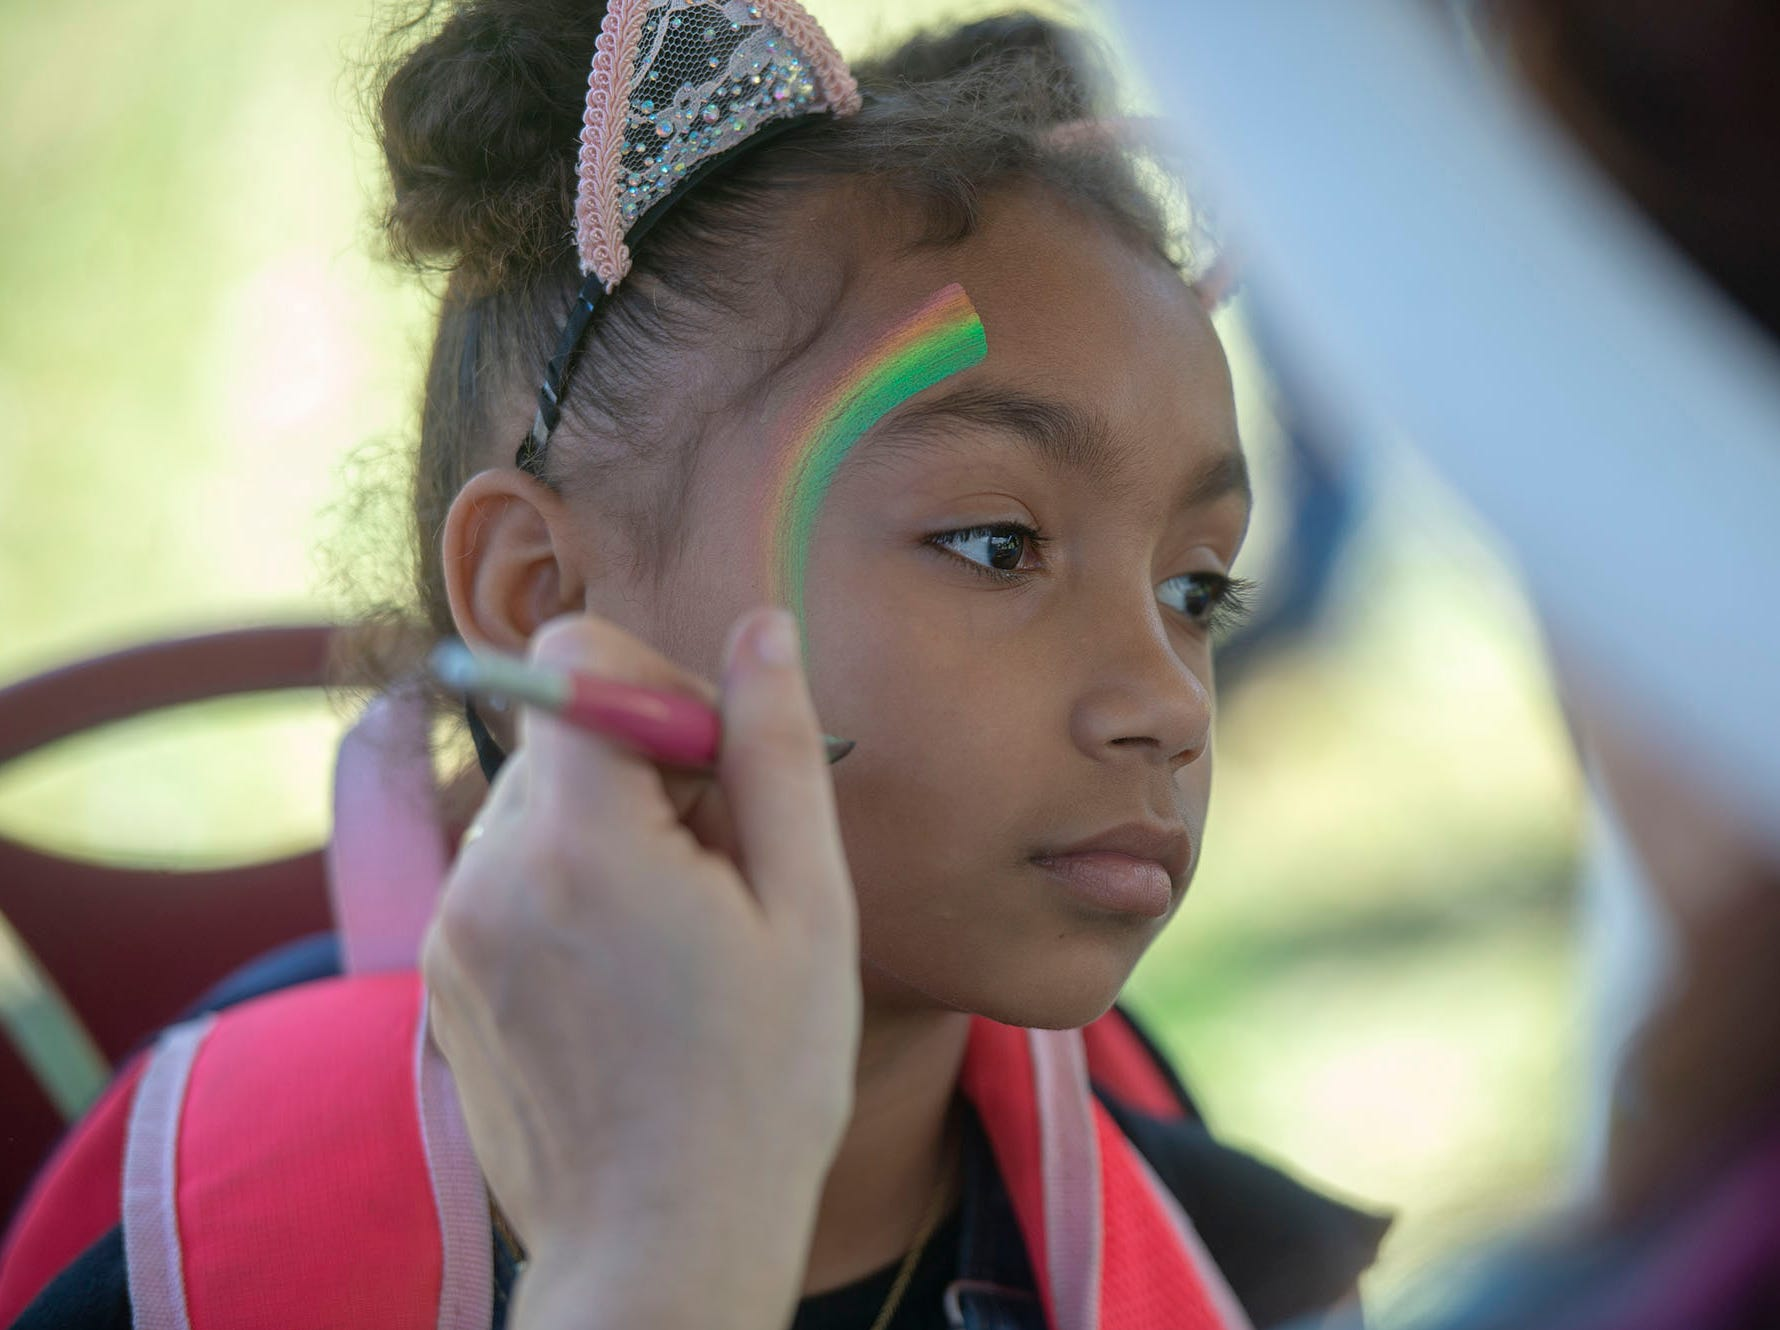 Rainbows were among the designs at the face painting booth at the City of York's Easter Egg Hunt at Kiwanis Lake on Saturday, April 13, 2019.